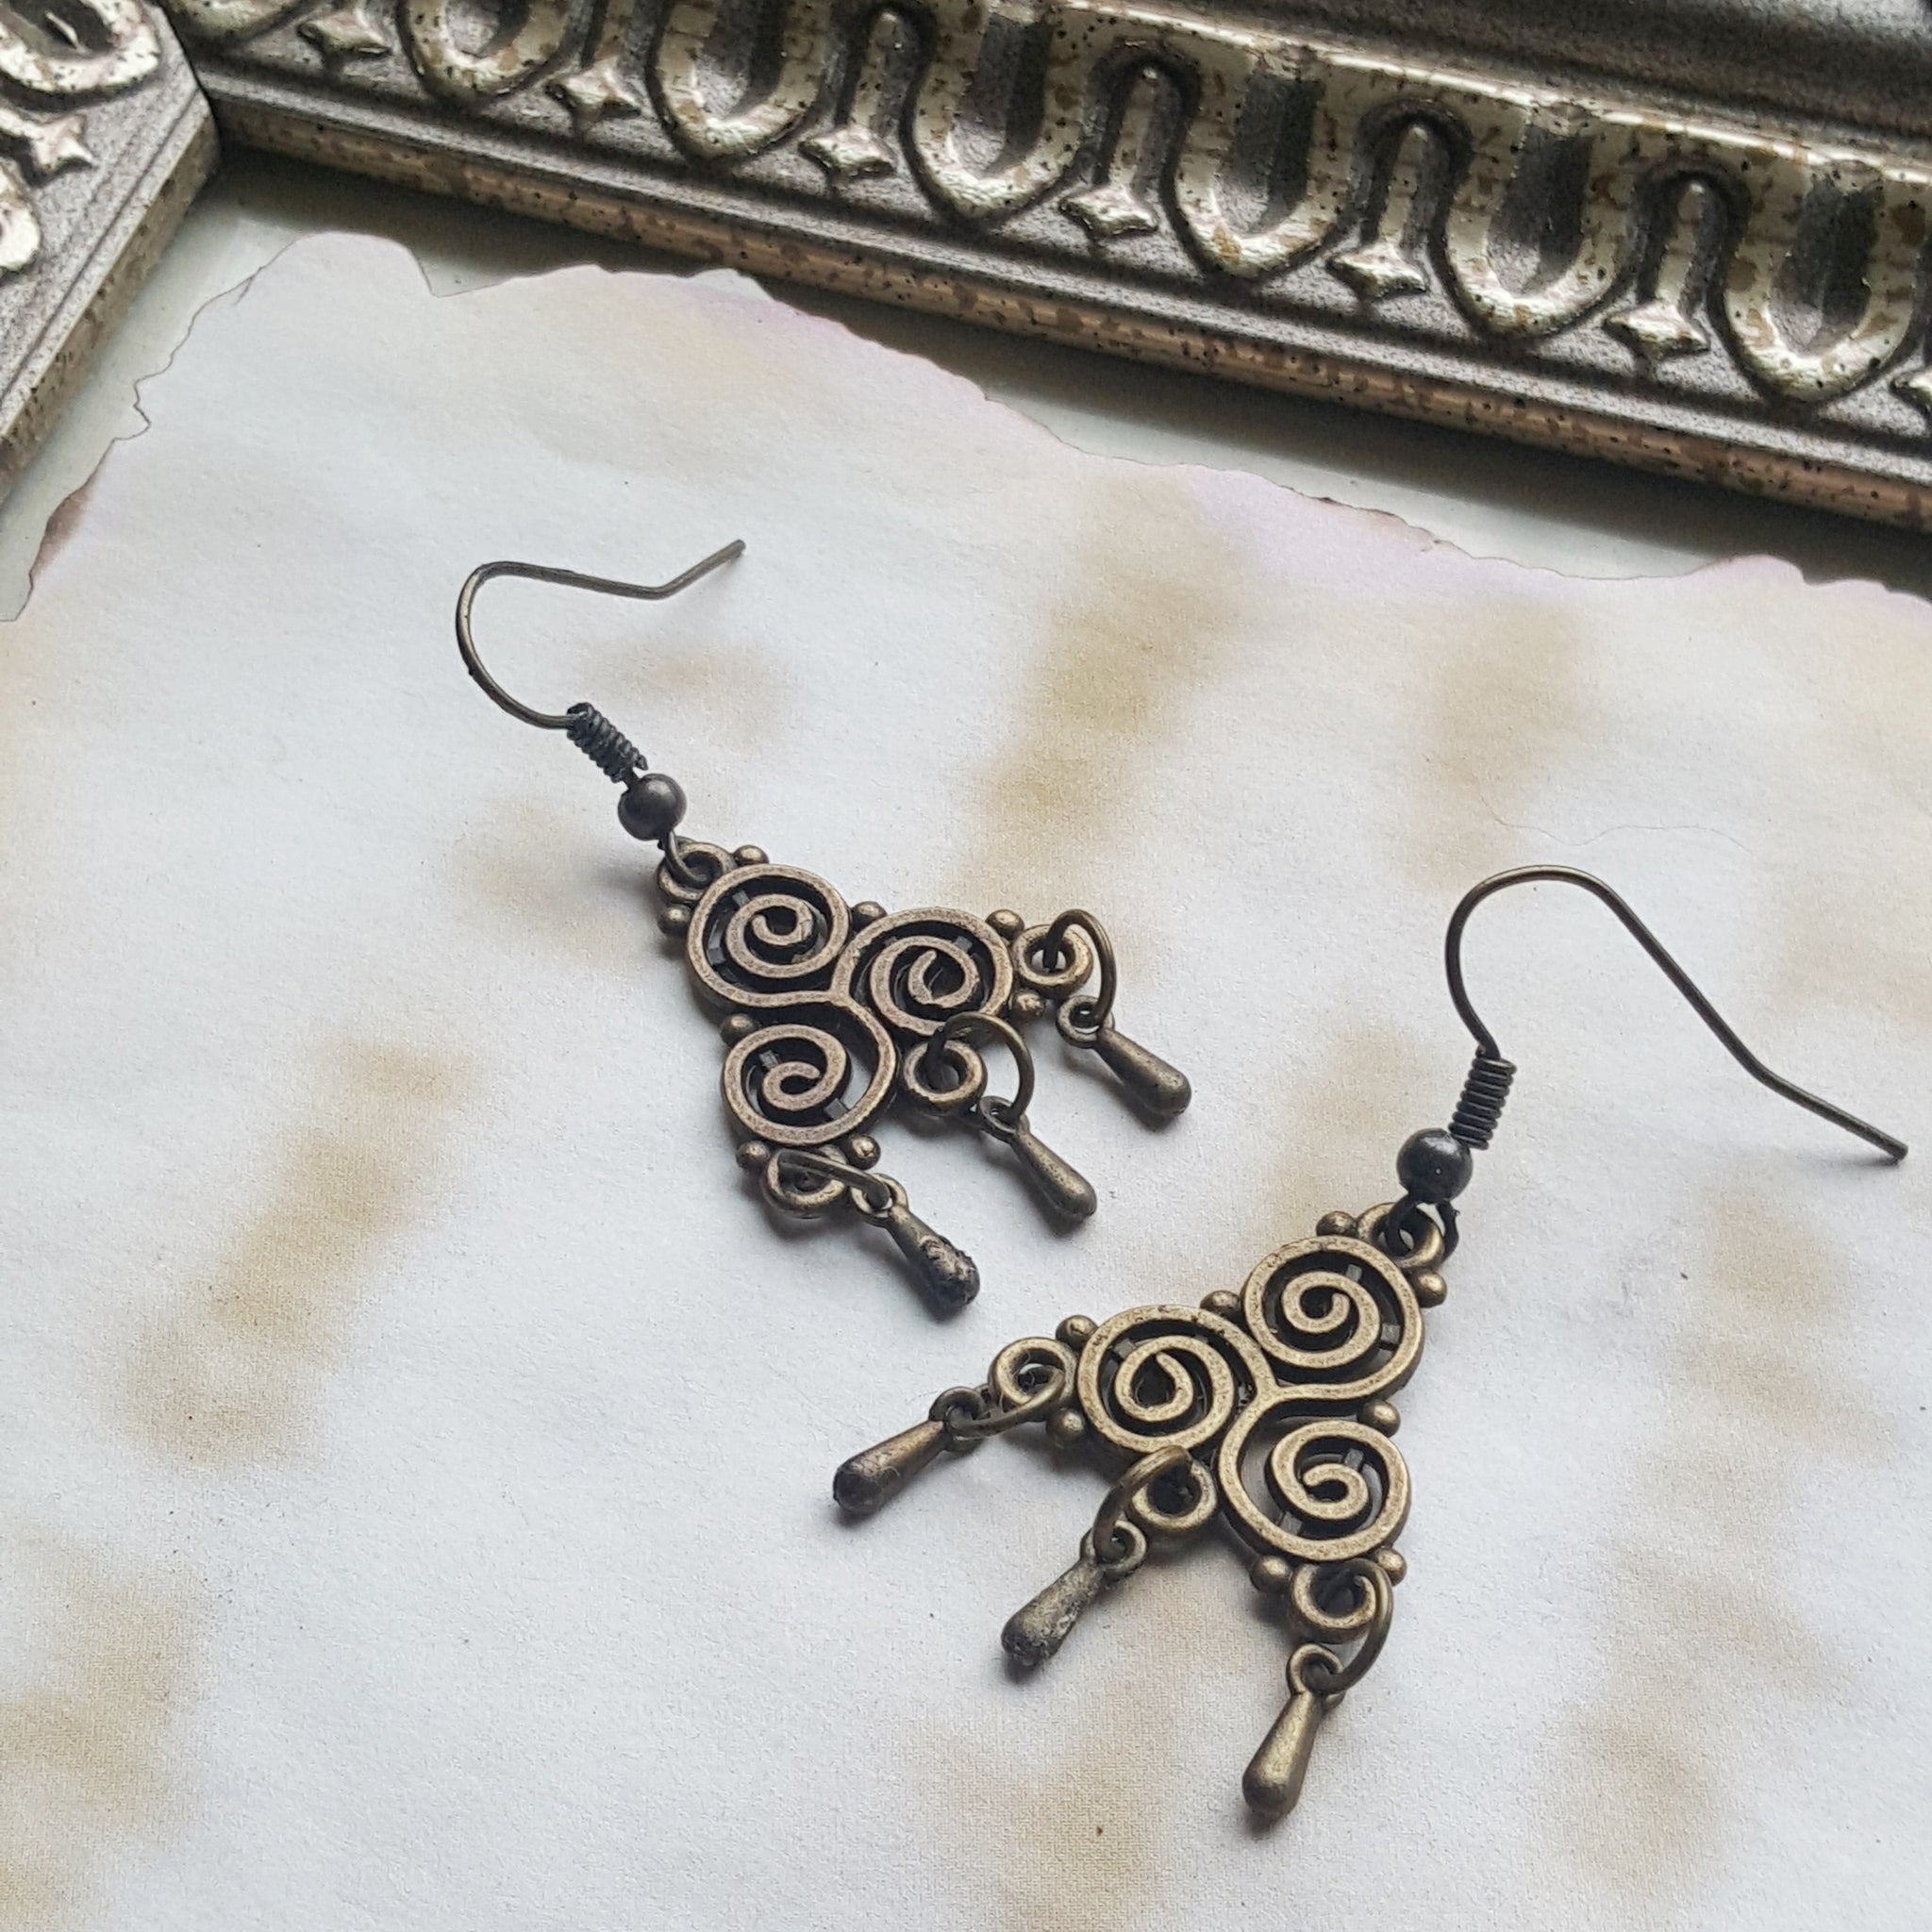 Bronze Chandelier Earrings - Ren Faire - Bohemian Earrings - Christmas Gift Idea - Handmade Jewelry - Ren Faire - DRAVYNMOOR